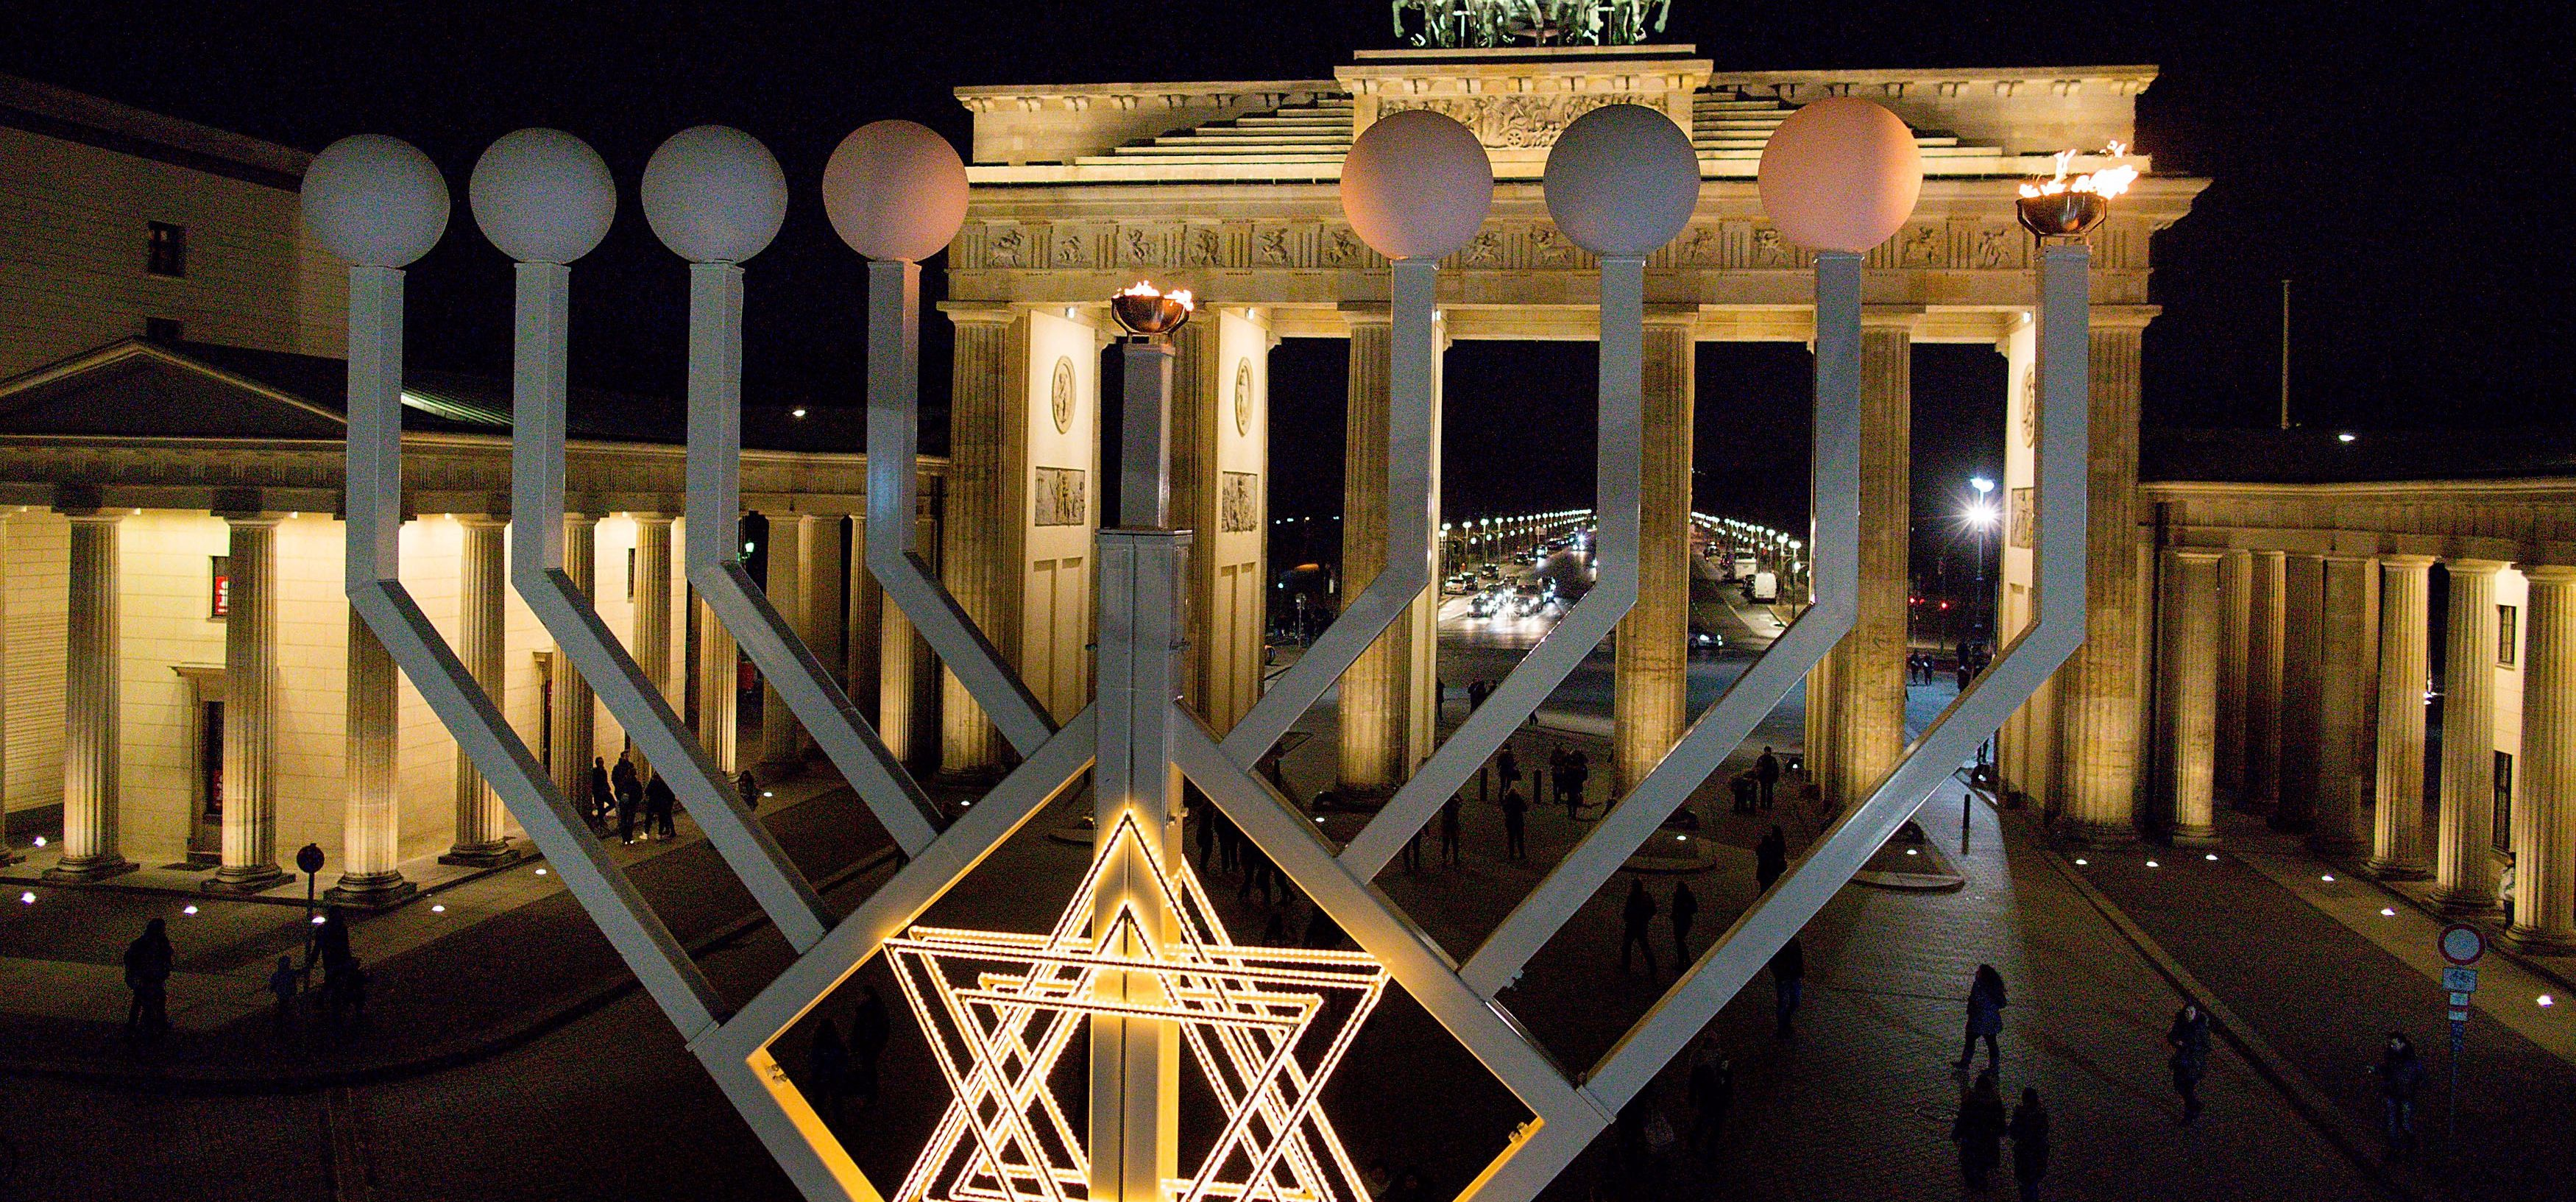 A group of Syrian refugee children — along with other Muslim groups in Berlin — joined with Jewish groups for a public Hanukkah candle-lighting ceremony t the Brandenburg Gate.